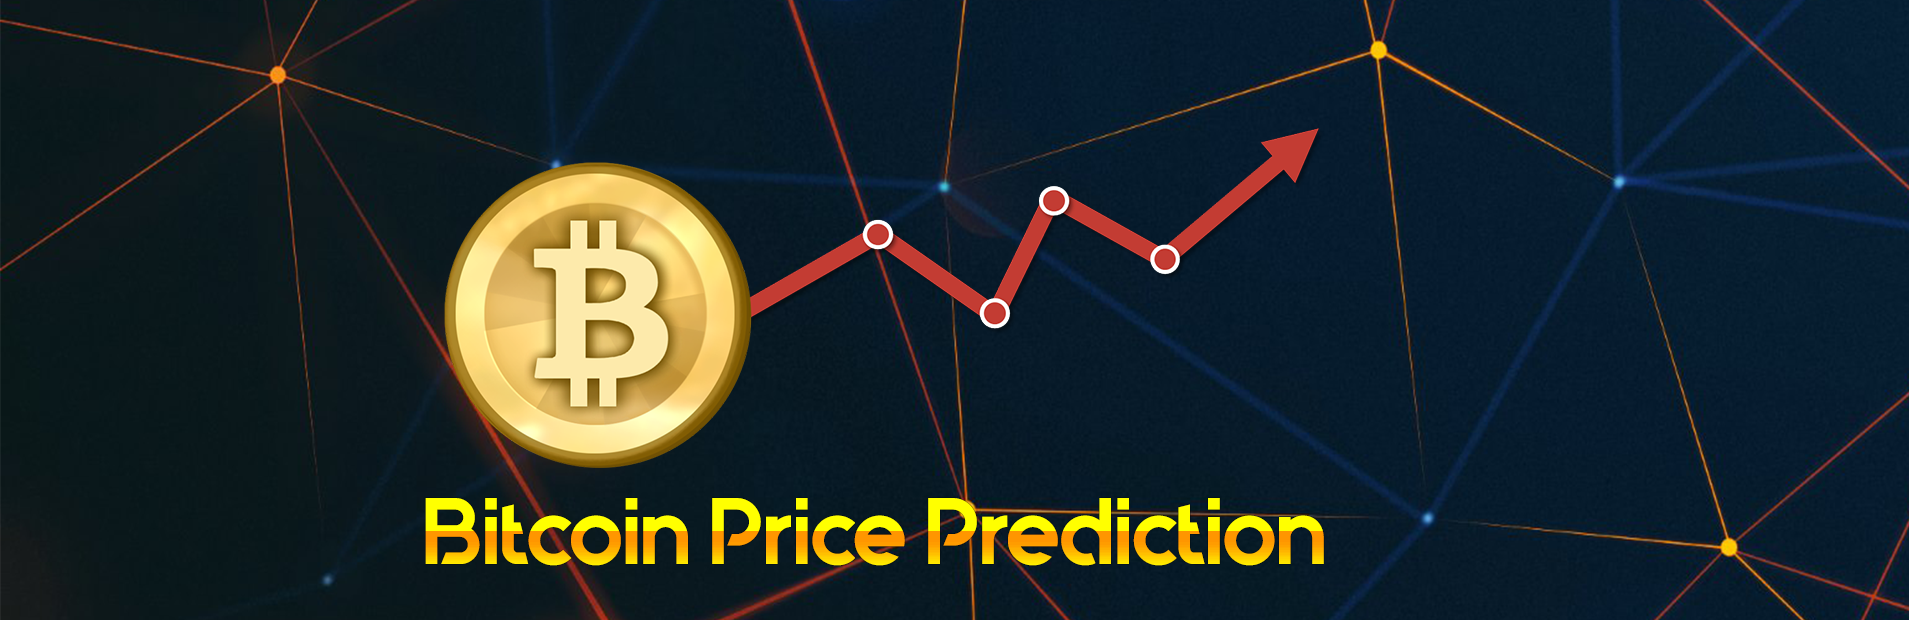 Latest Bitcoin Price Prediction Graphic